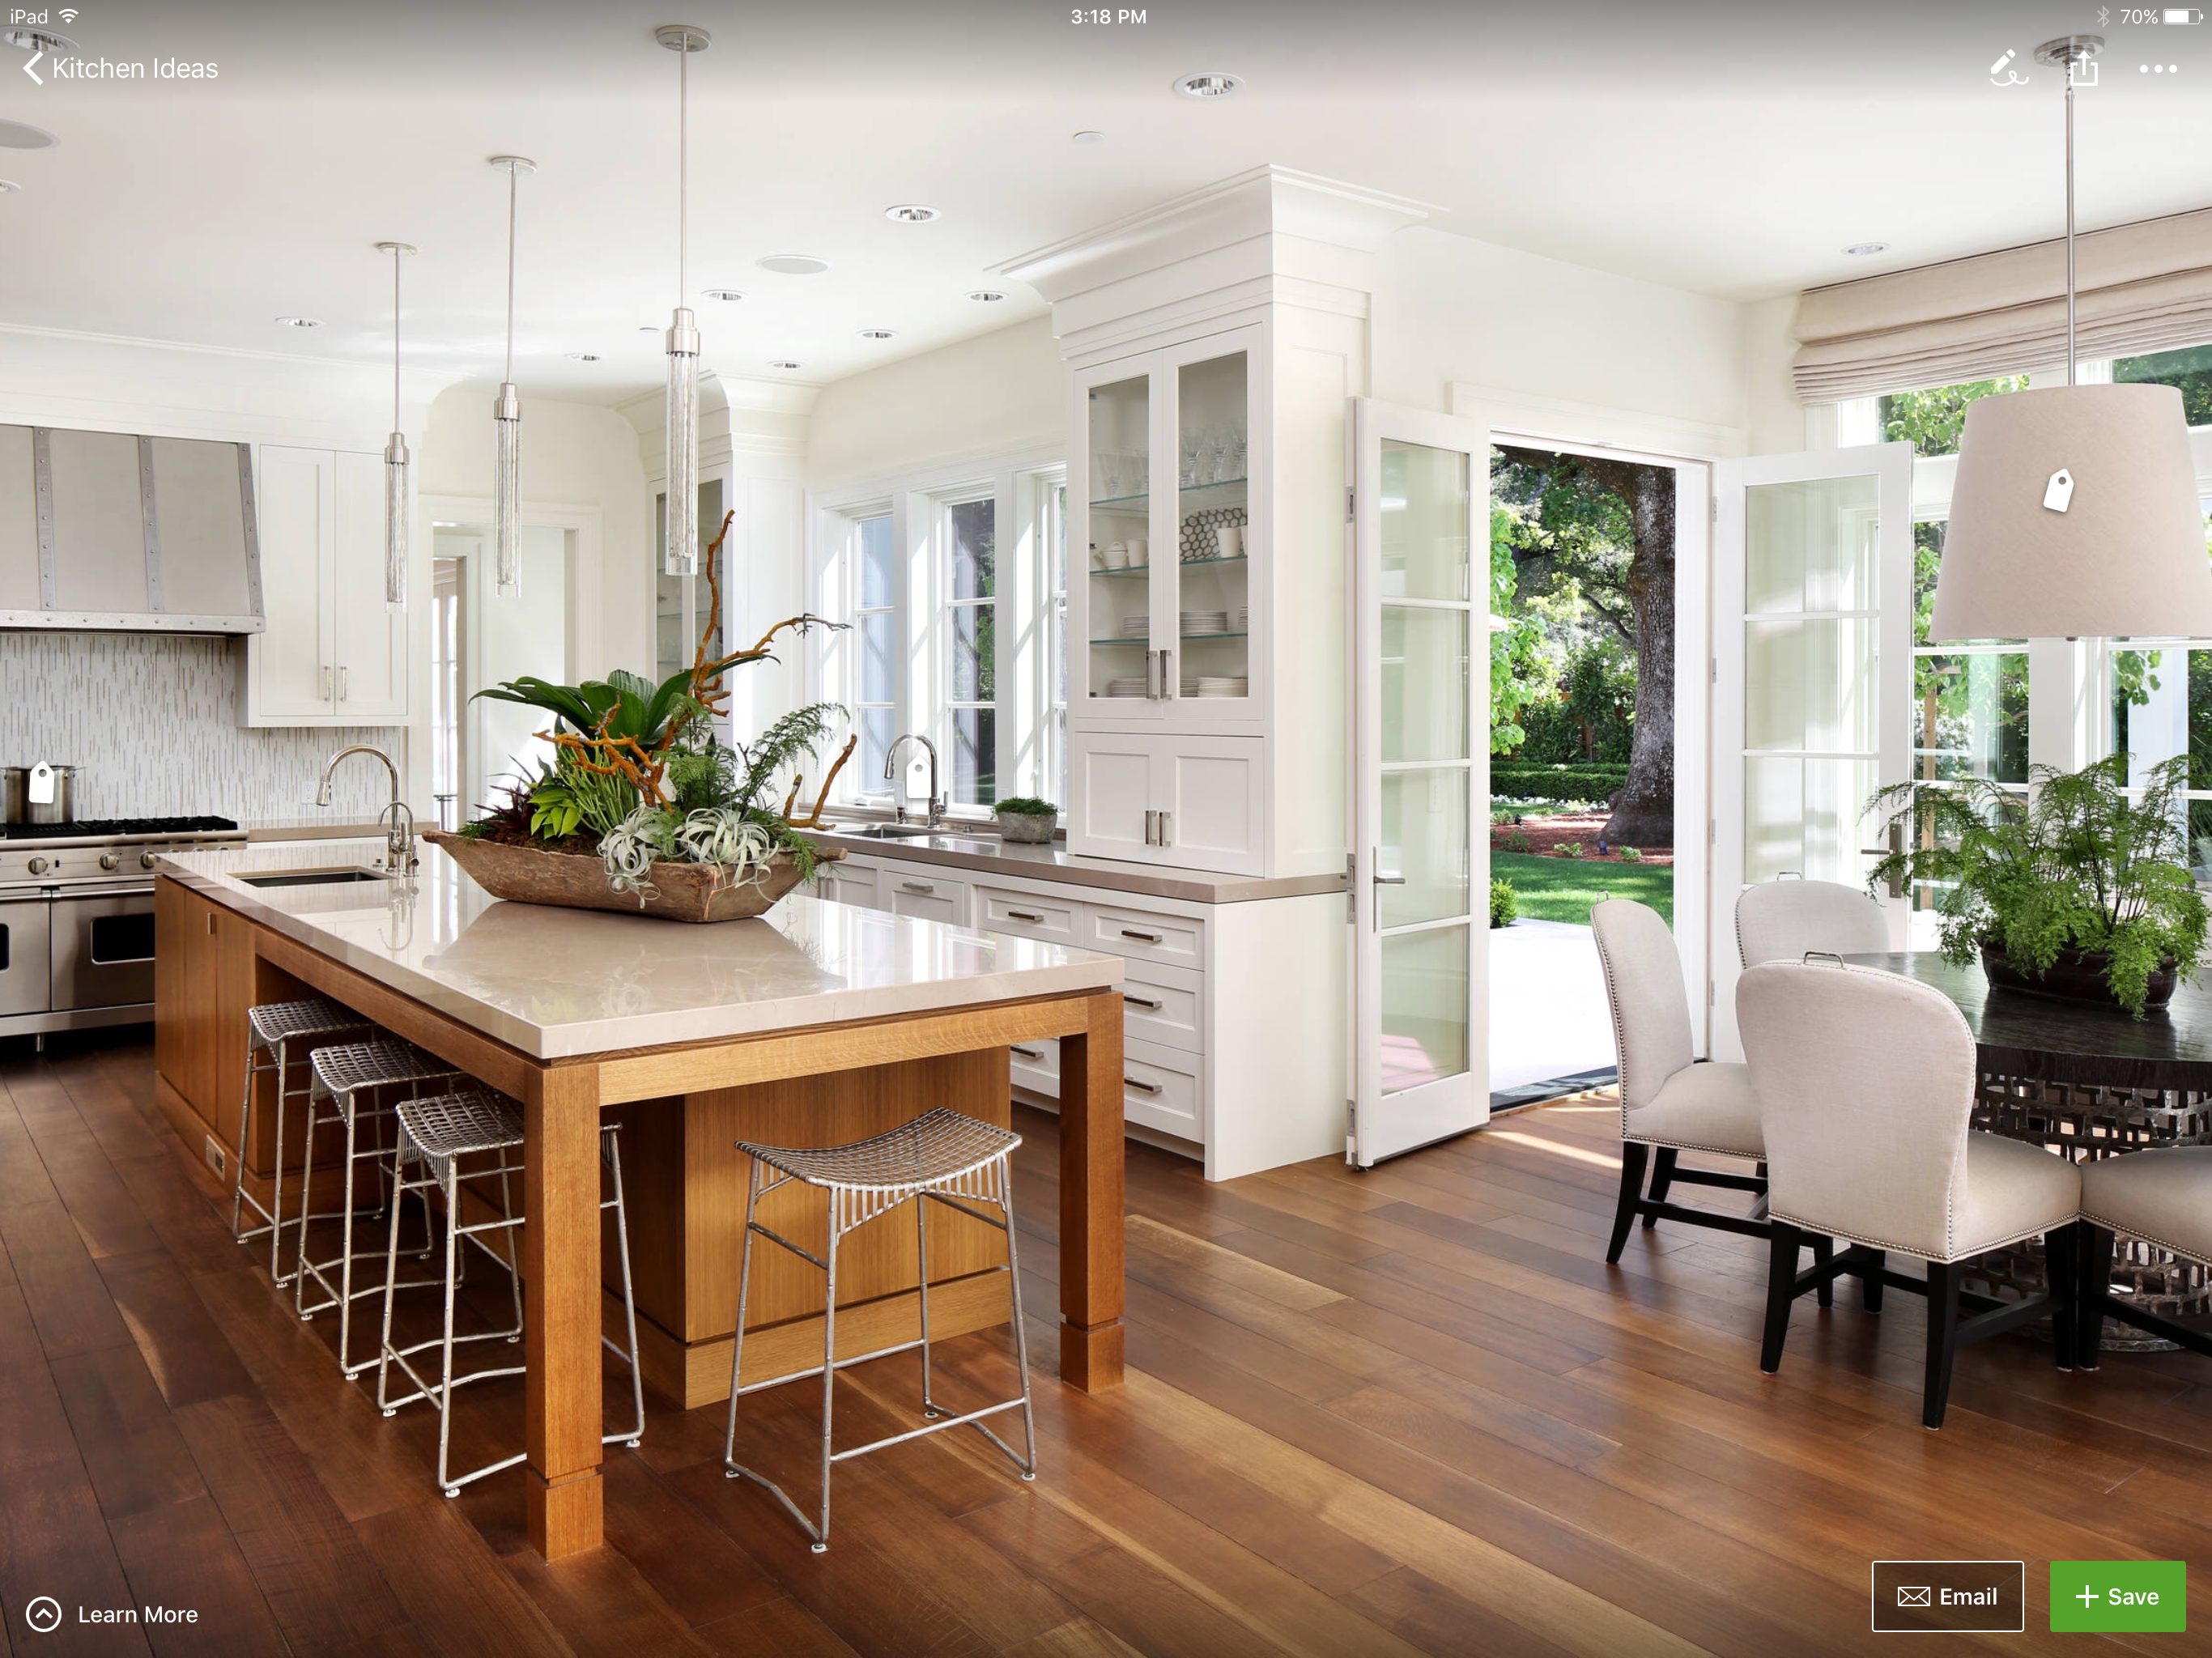 Pin by M C on Kitchen Board Transitional kitchen design